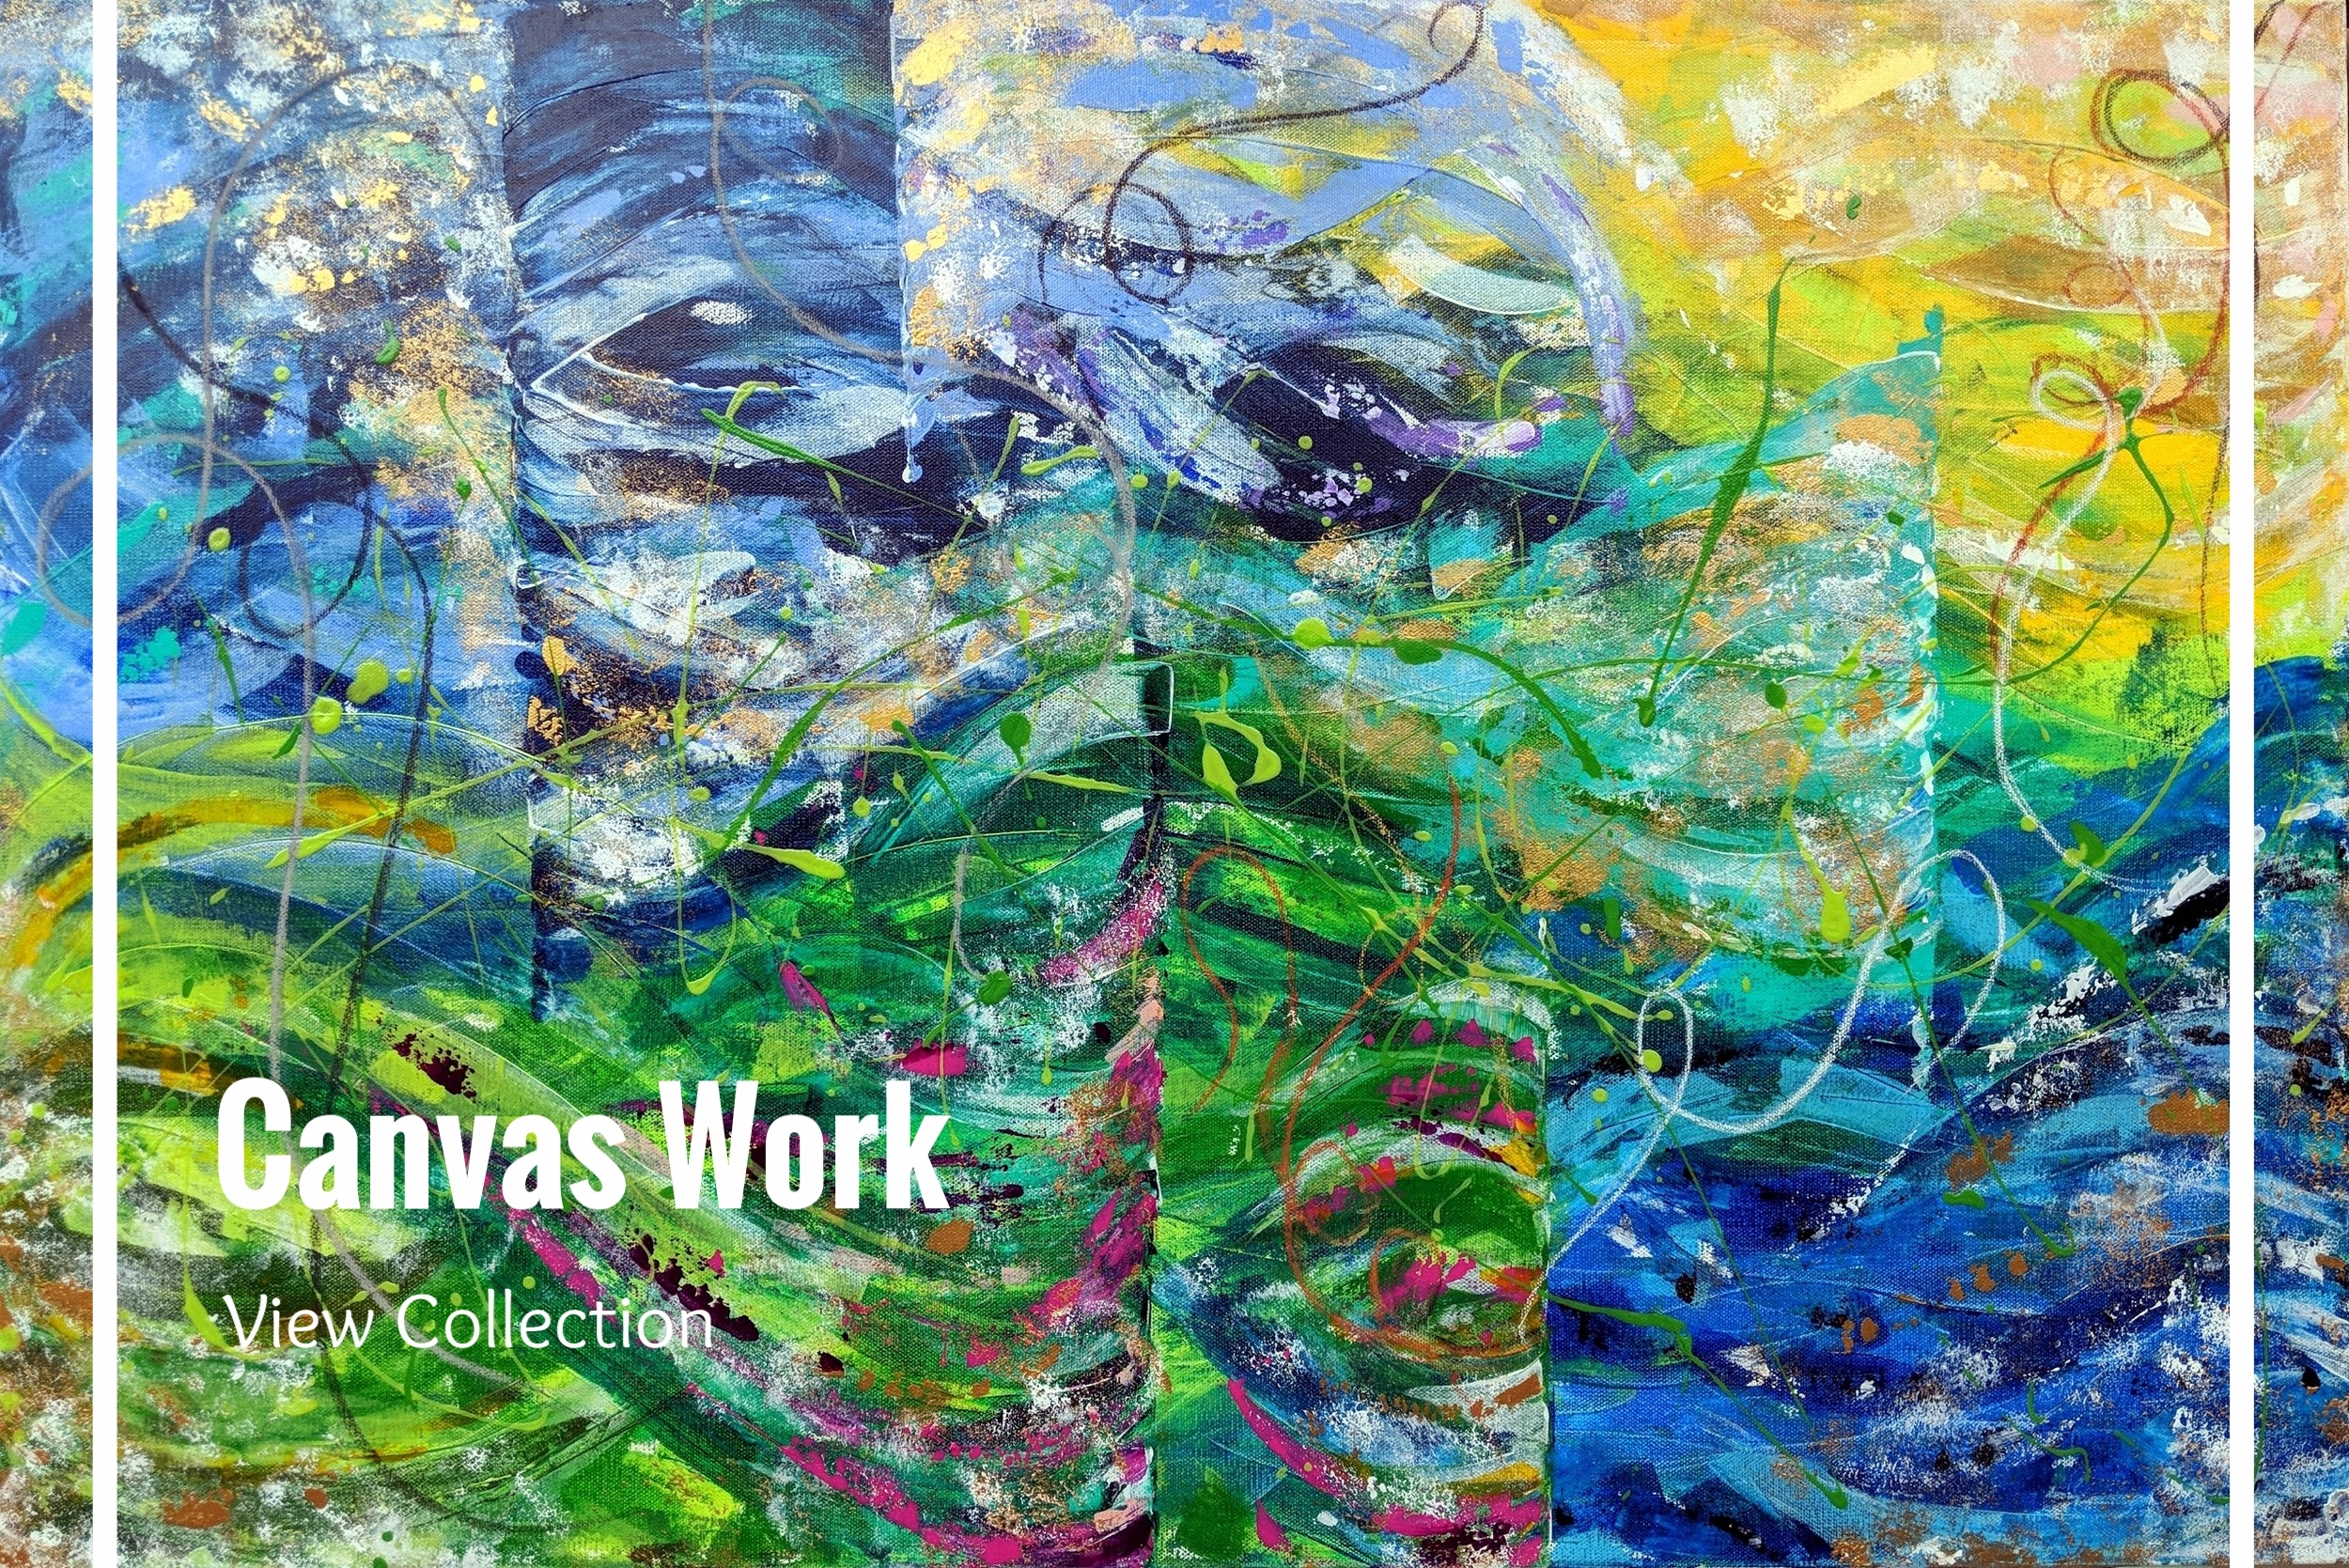 Work on Canvas